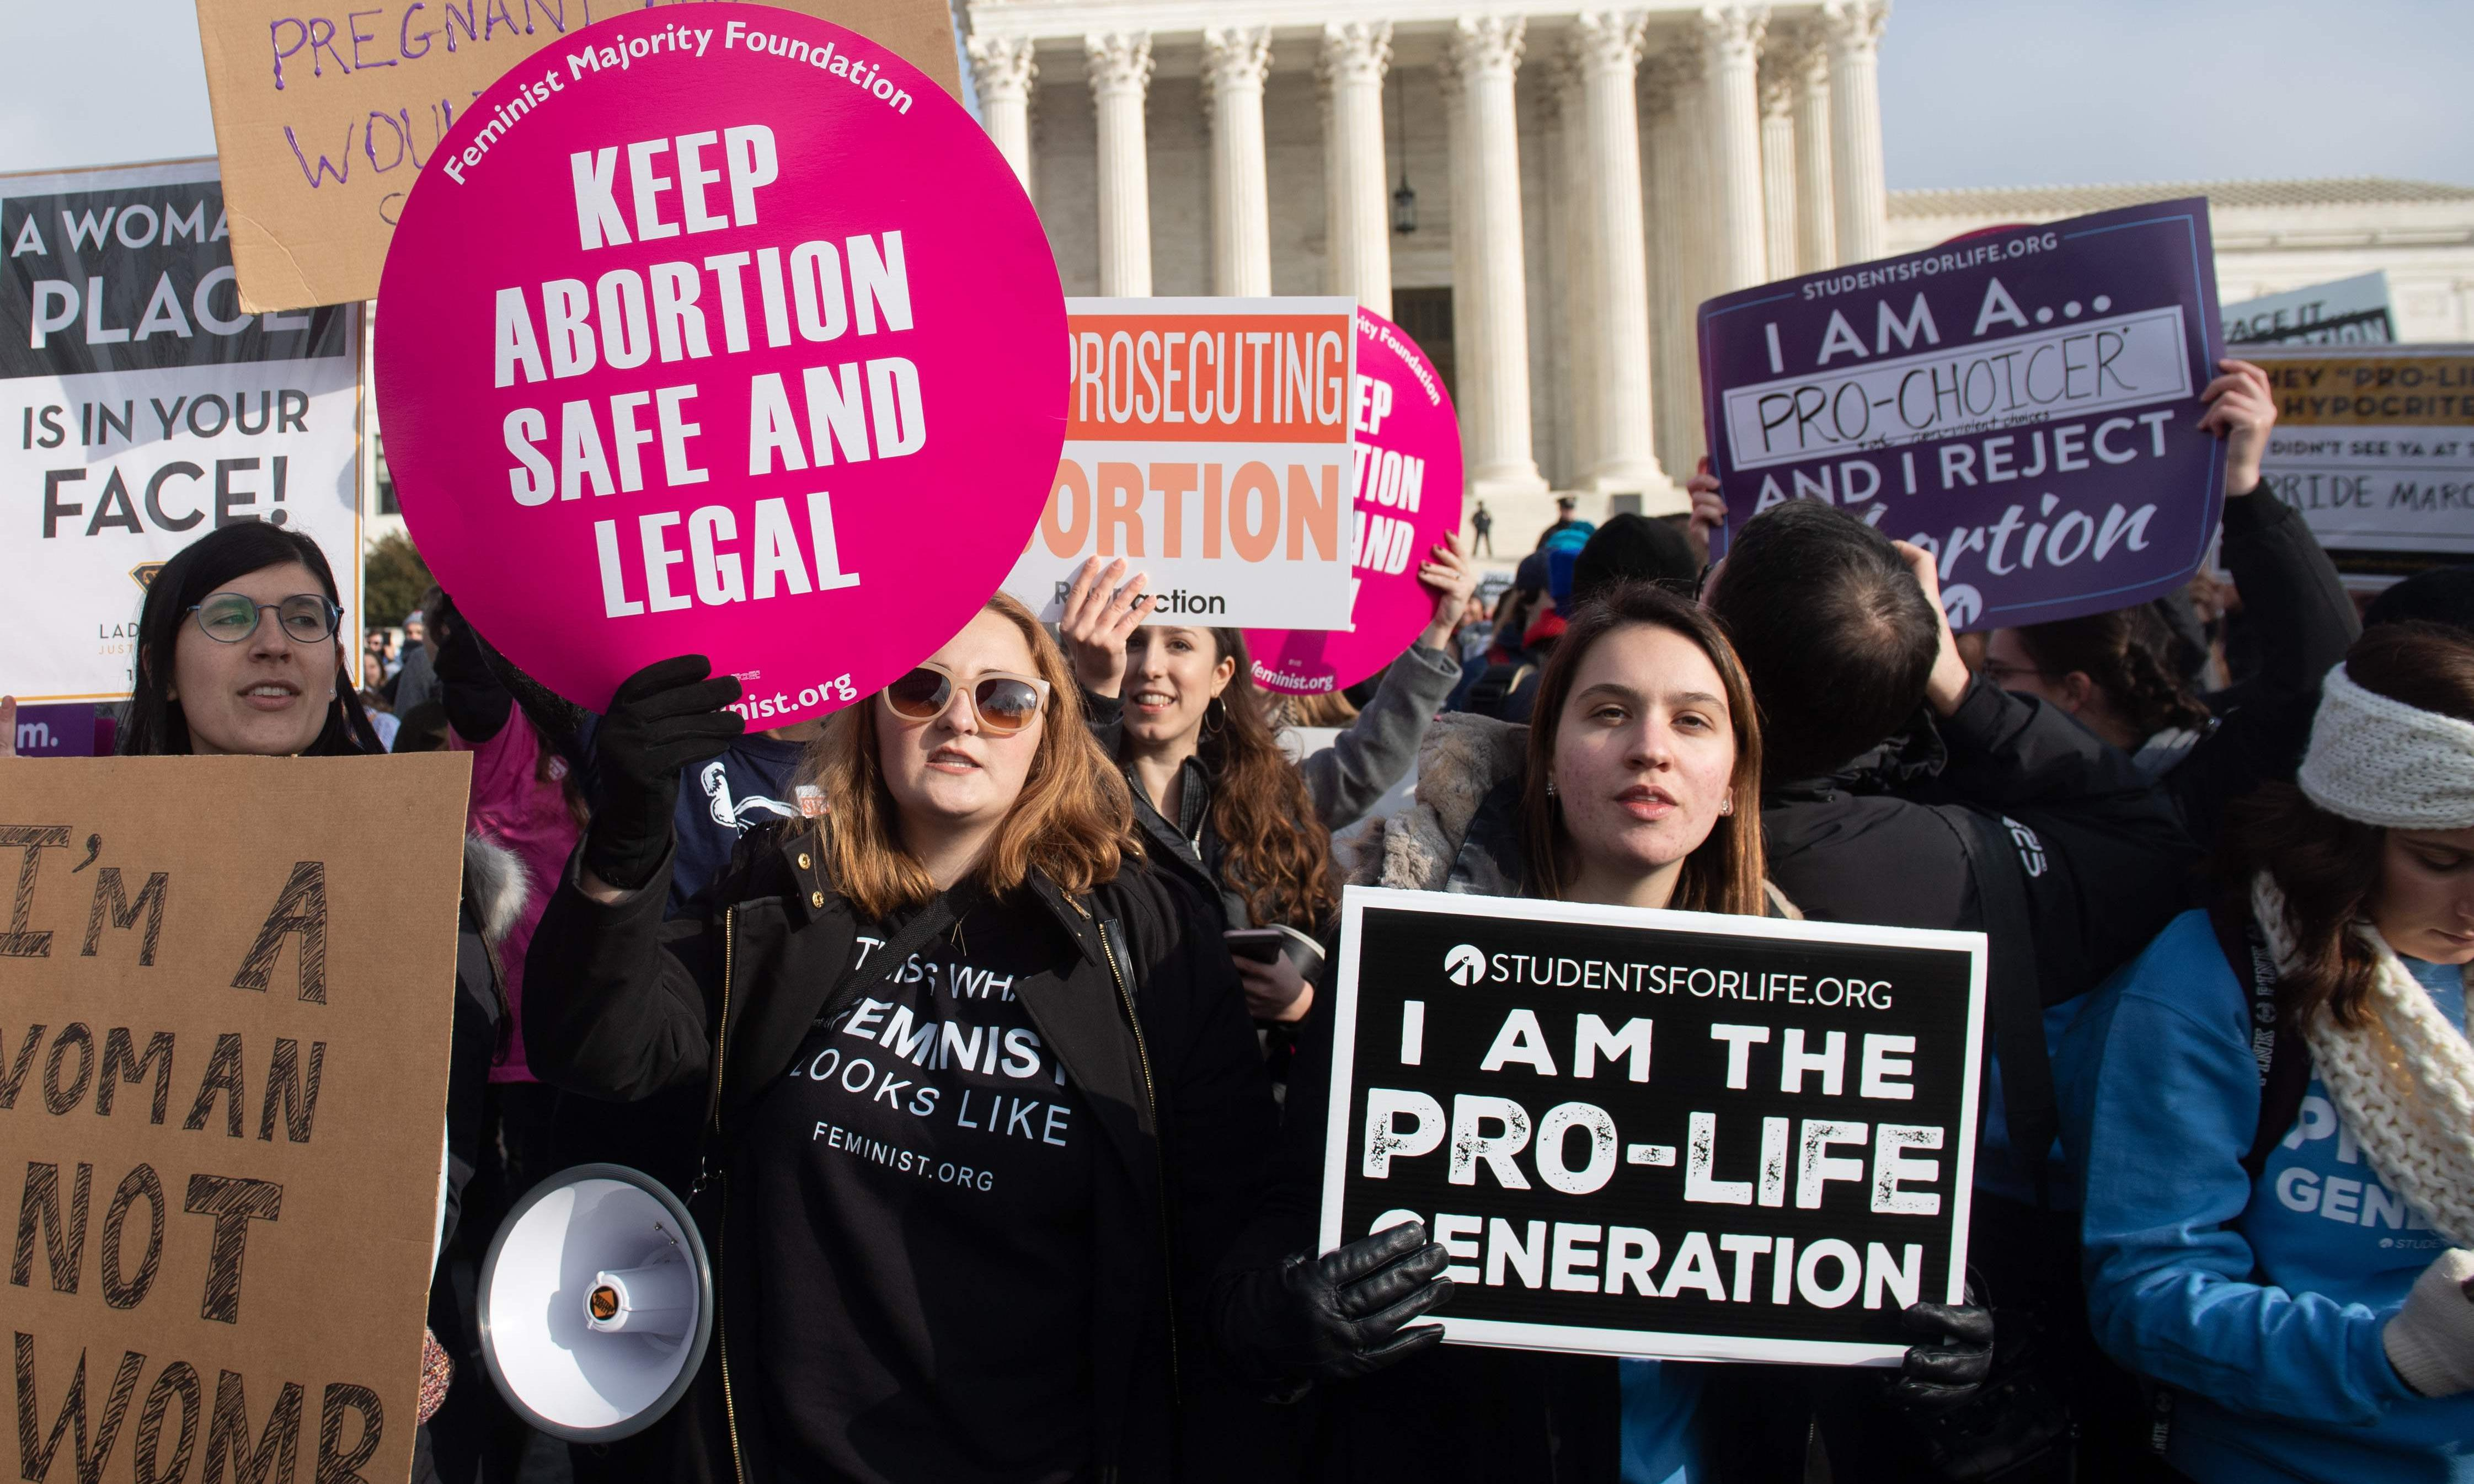 Christian rightwing figures warn abortion fight could lead to civil war